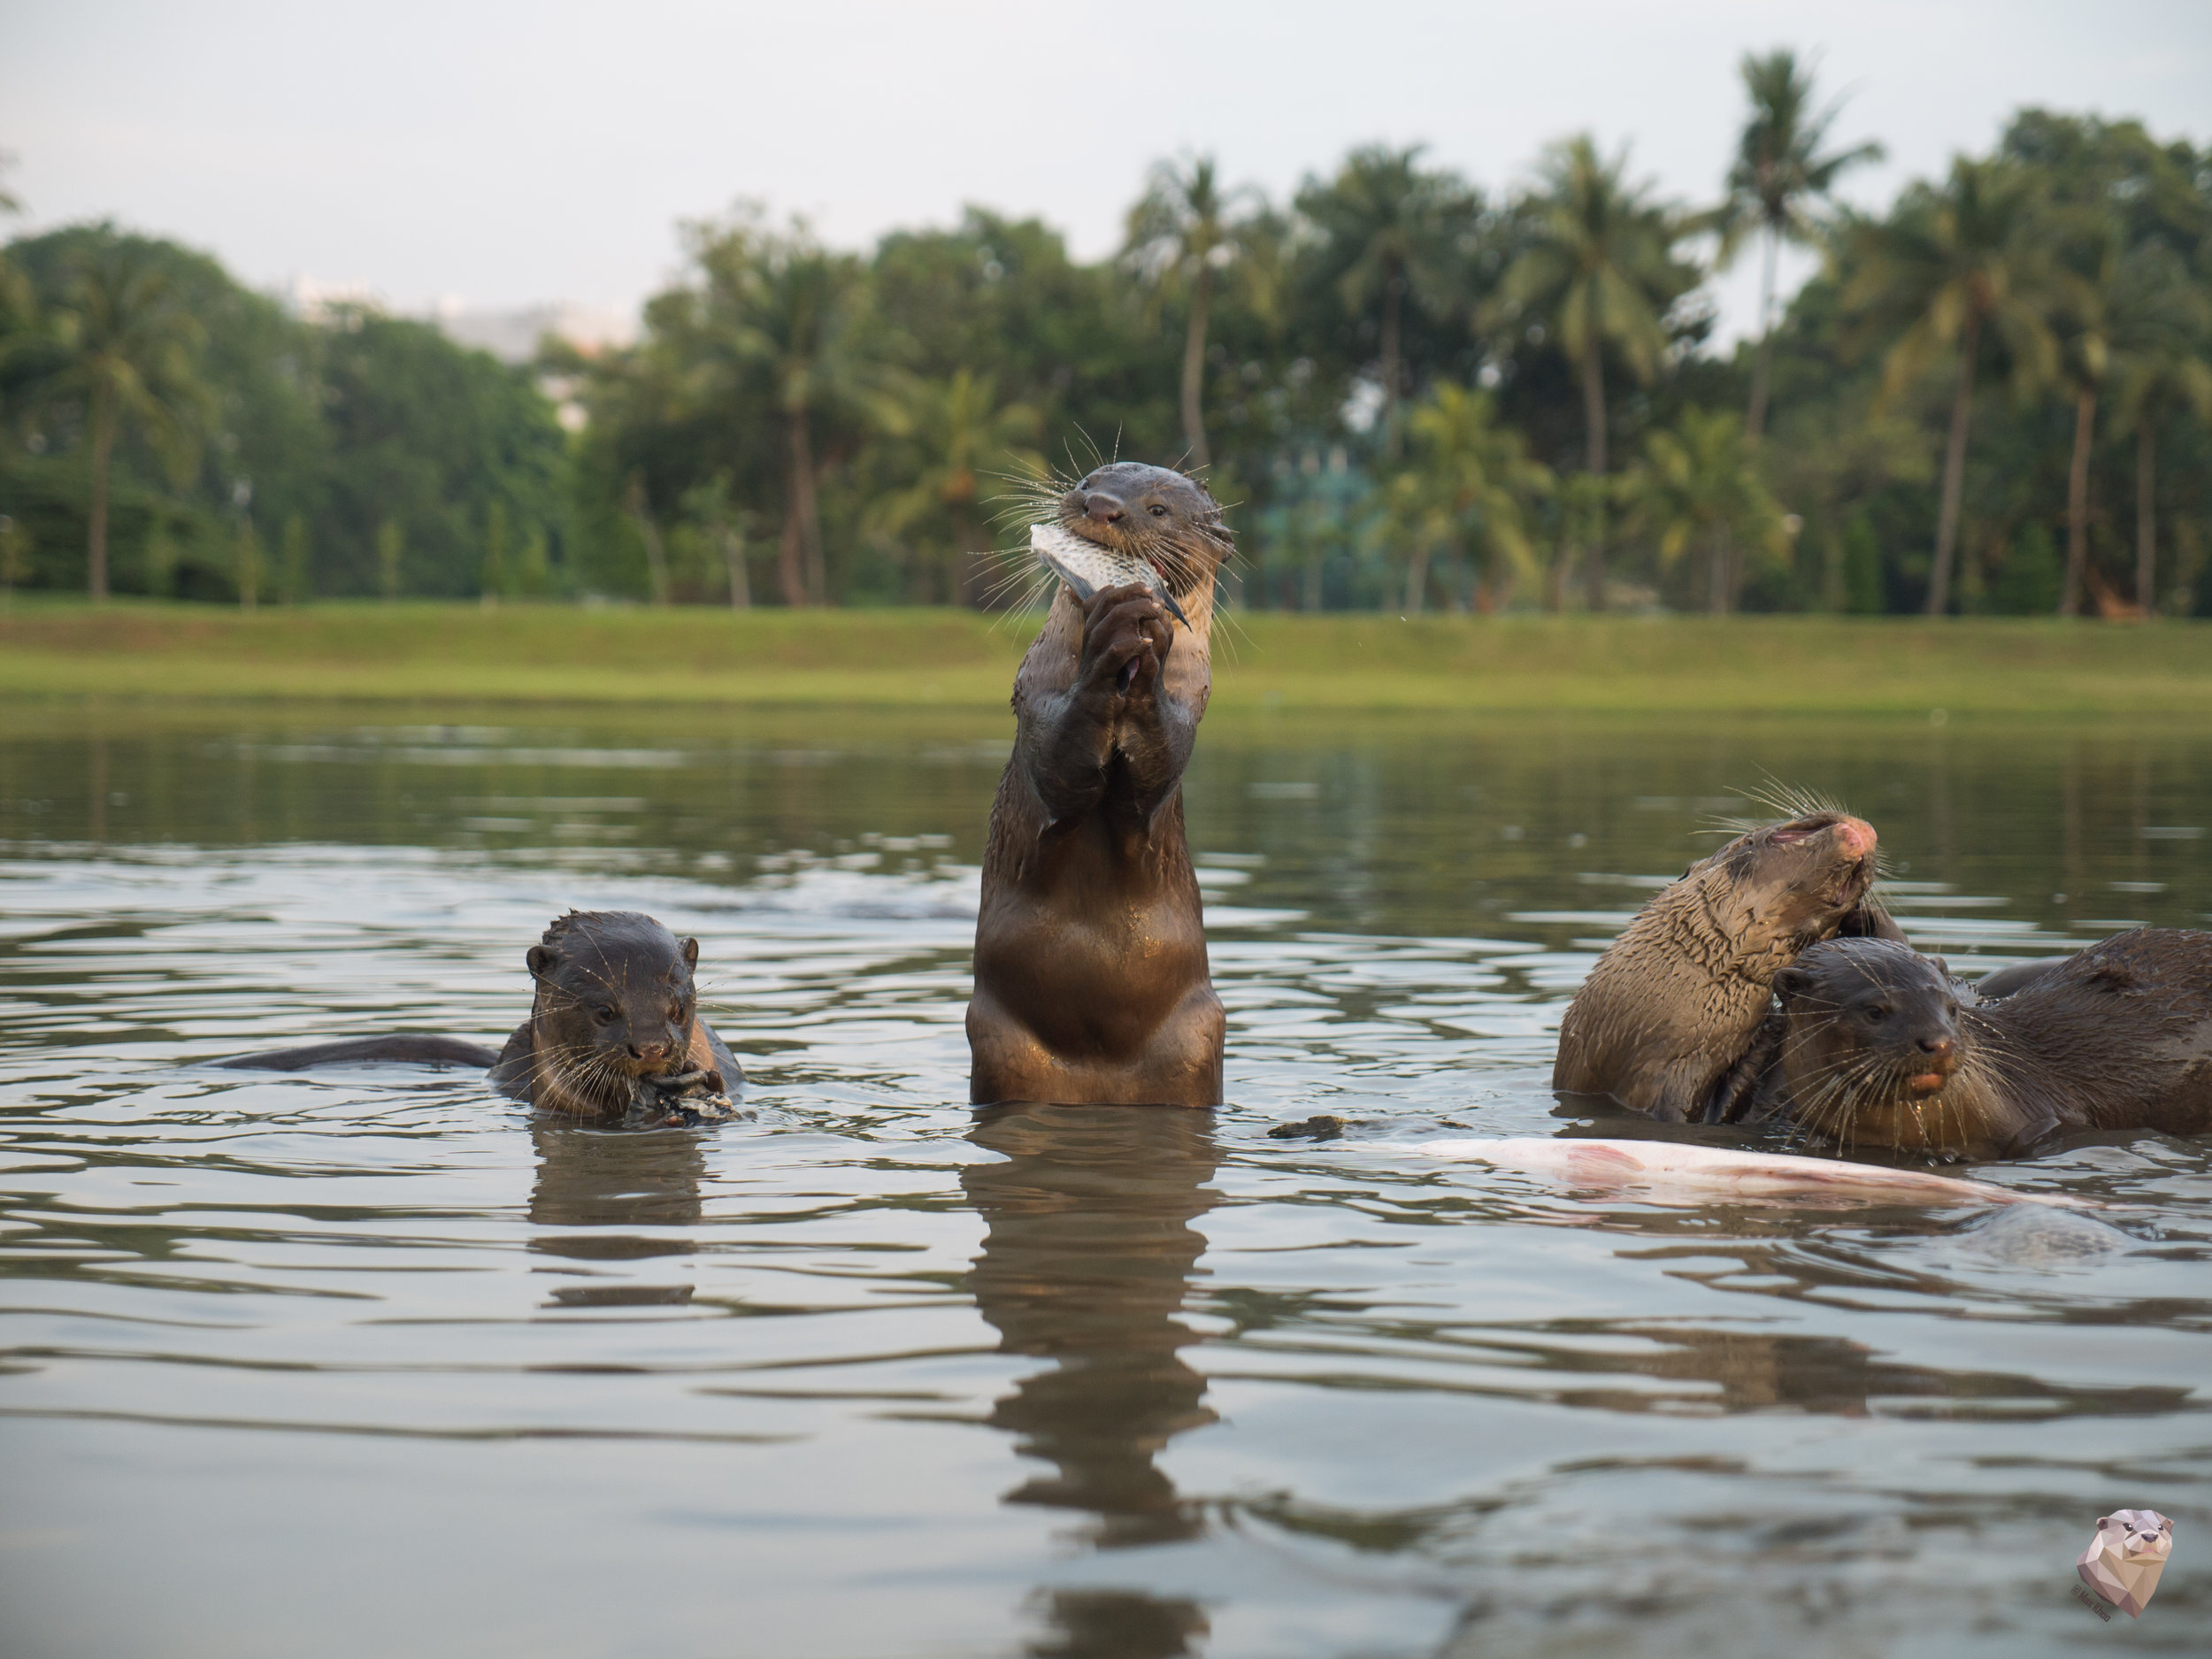 Feeding time for the Otters! Photo by Max Khoo